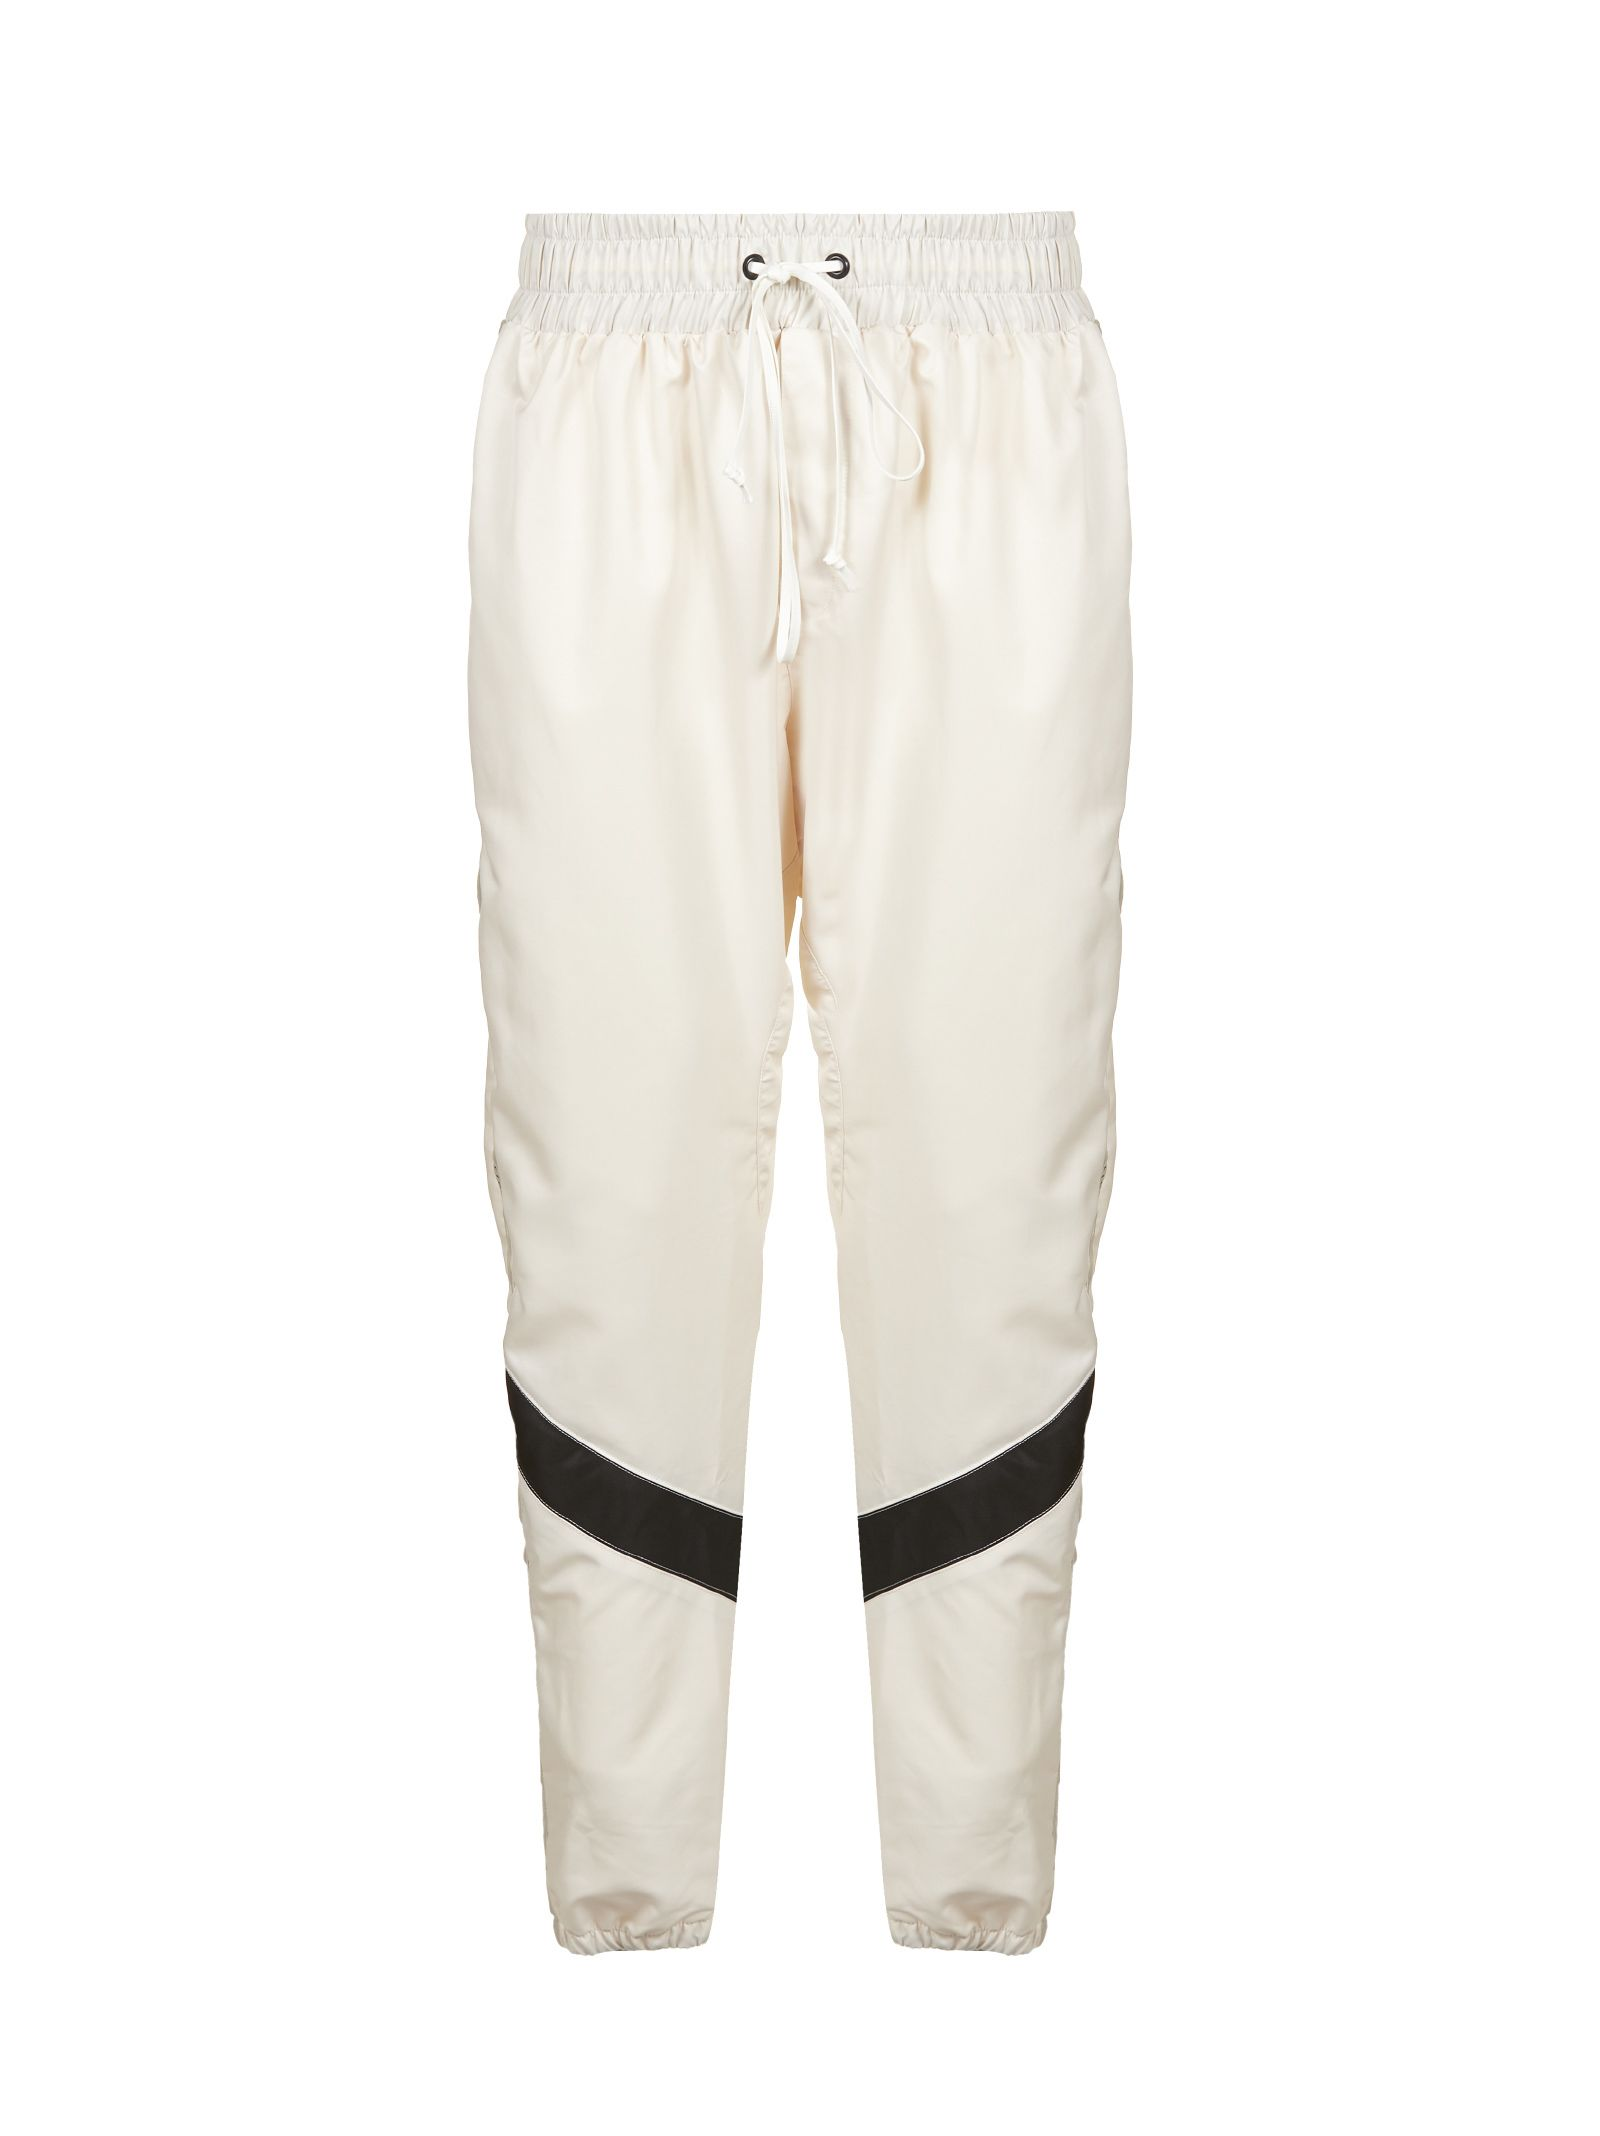 DANIEL PATRICK Drawstring Trousers in Ivory Black